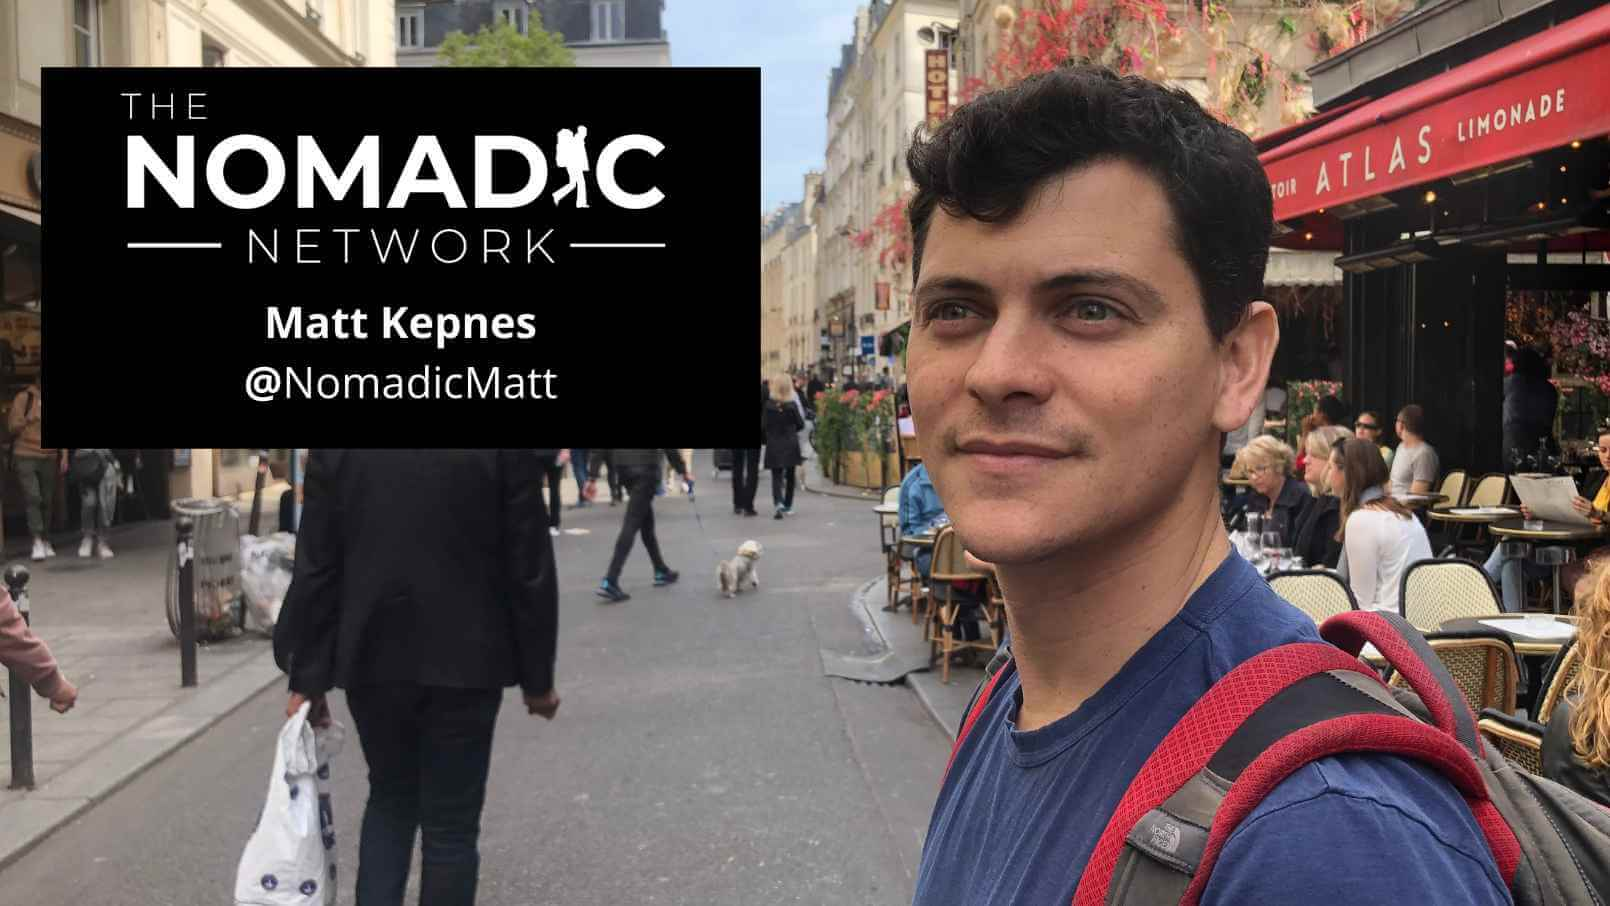 Nomadic Matt Kepnes with read backpack in streets of France